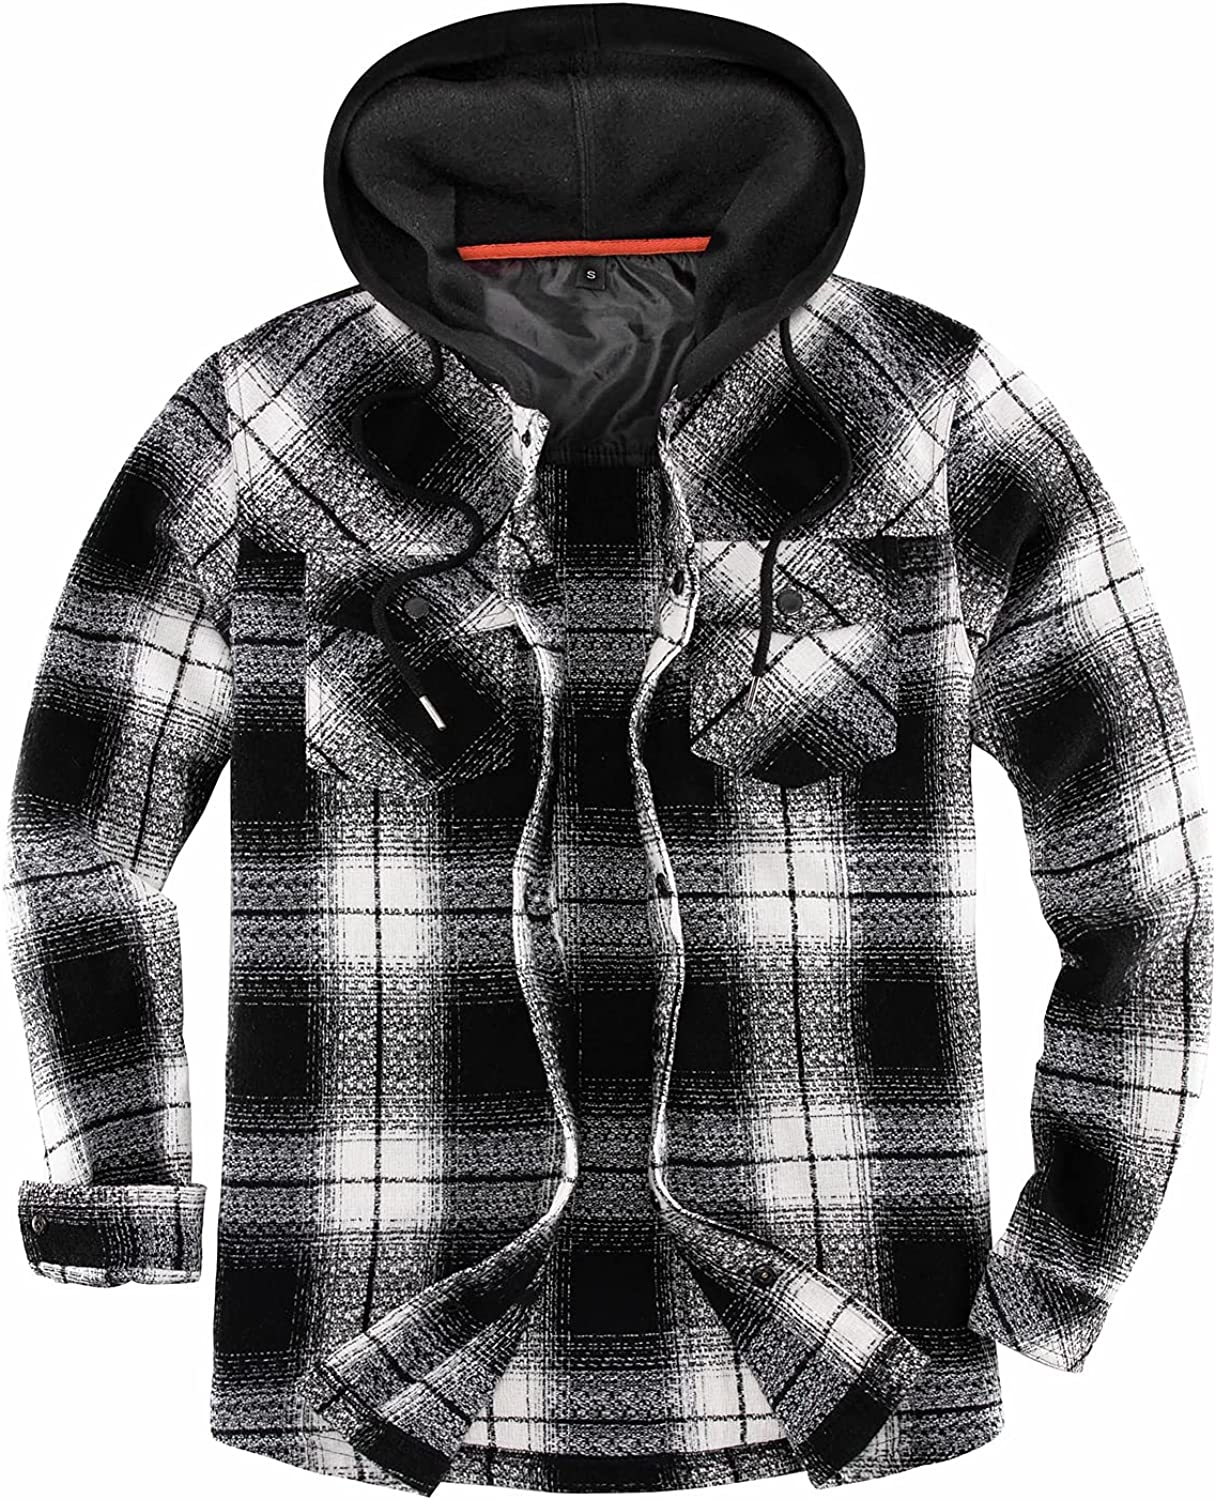 ThCreasa Mens Plaid Hooded Flannel Shirt Jacket, Button Down Flannel Jackets with Hand Pockets